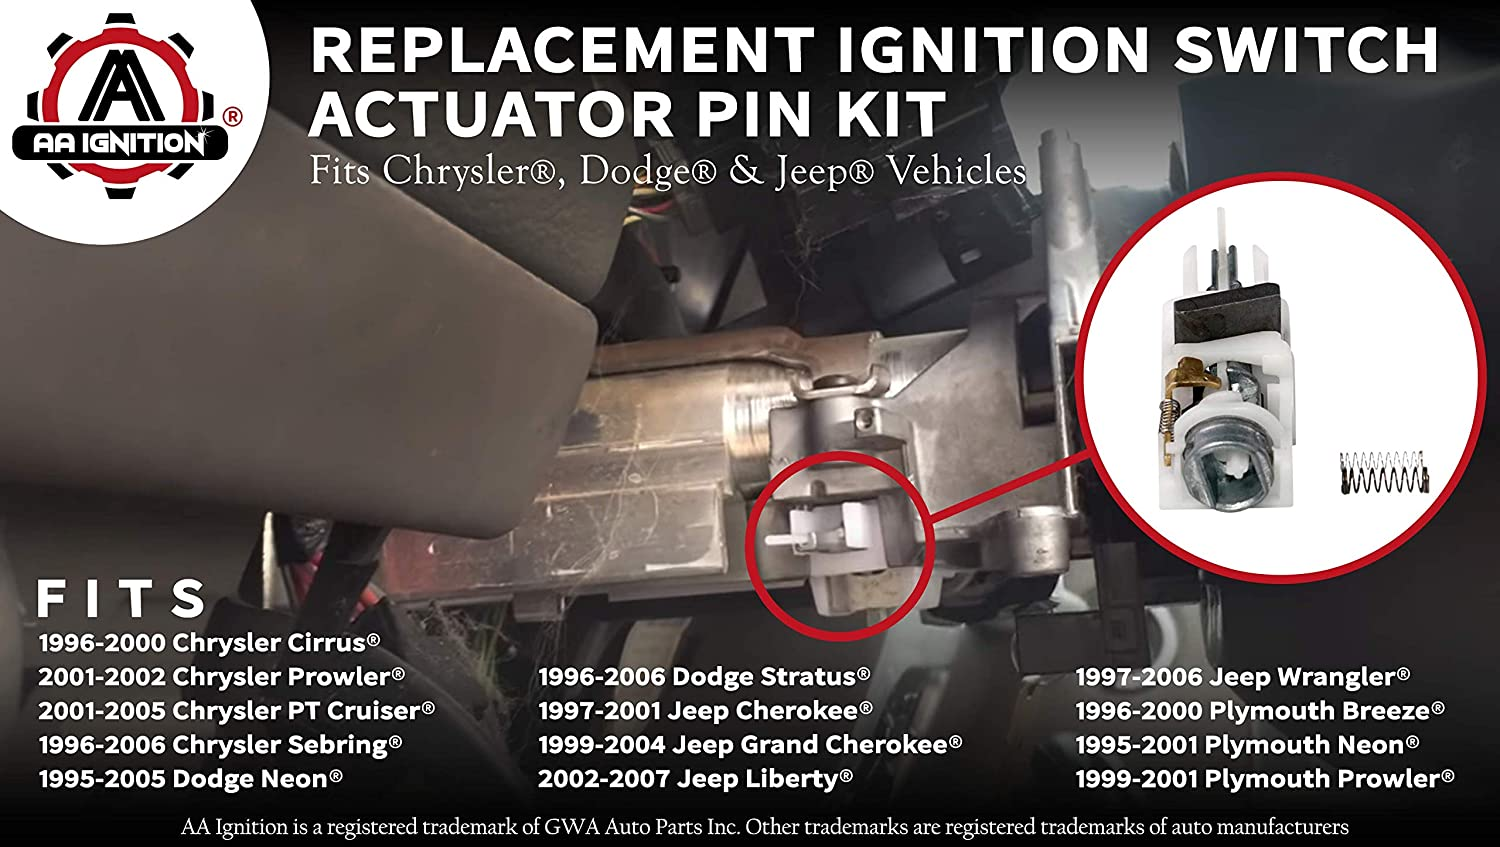 2001 Pt Cruiser Fan Relay Wiring Diagram Together With 2001 Pt Cruiser